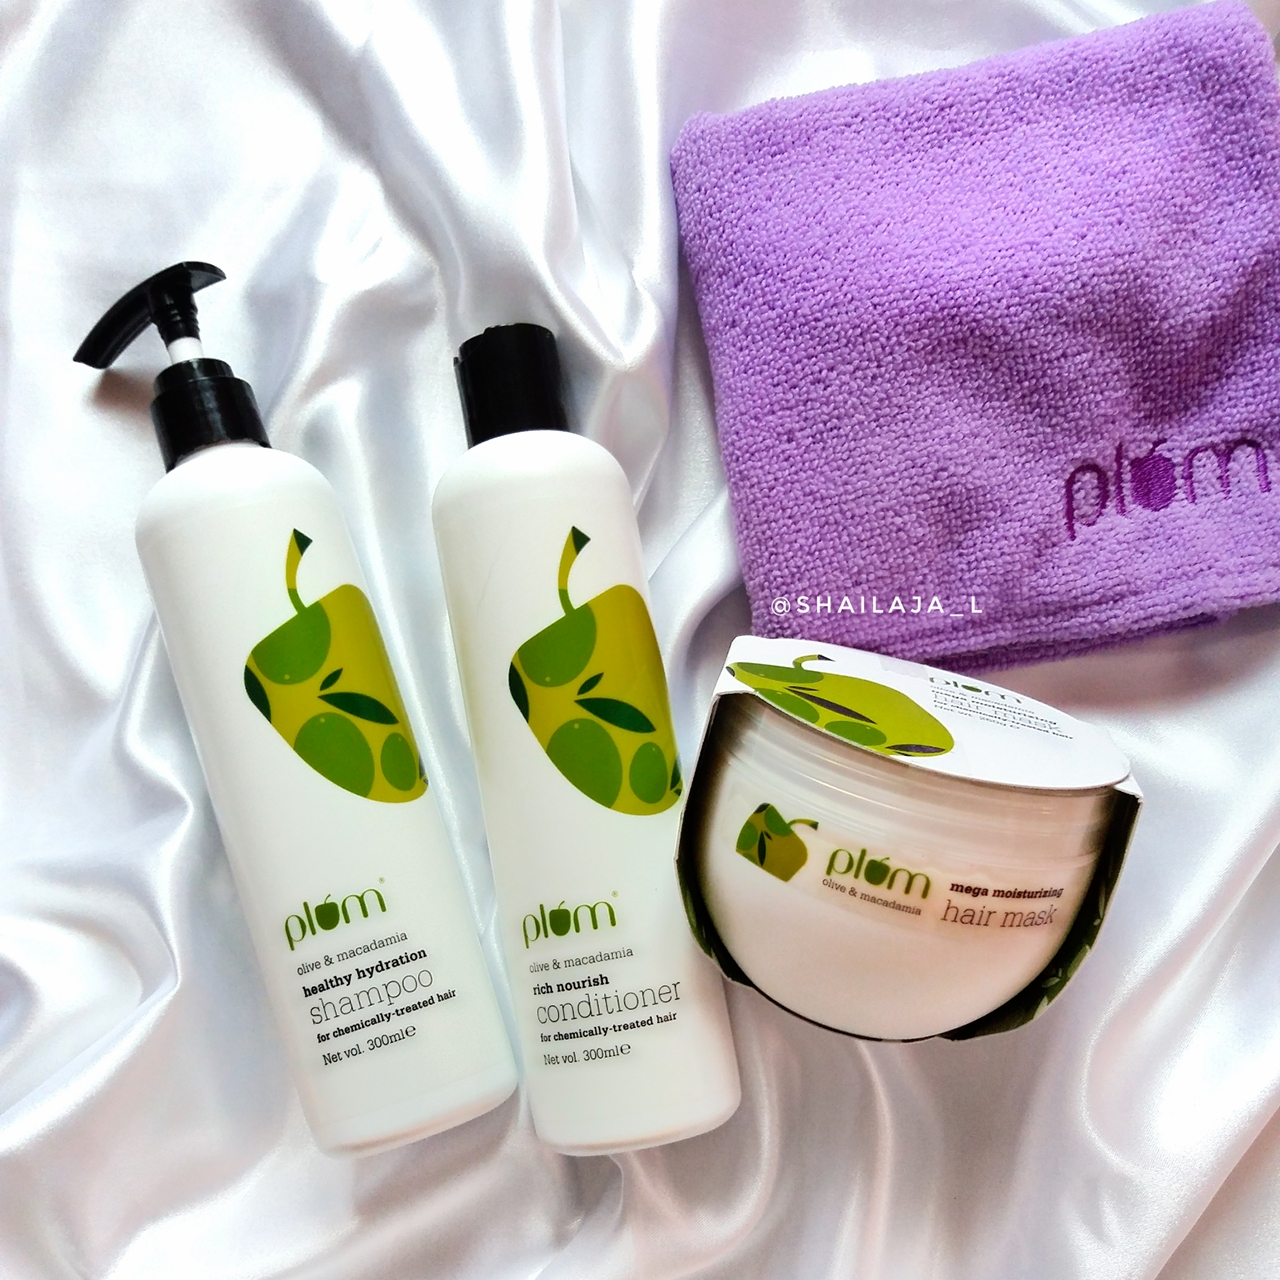 PLUM OLIVE OIL & MACADAMIA HAIRCARE